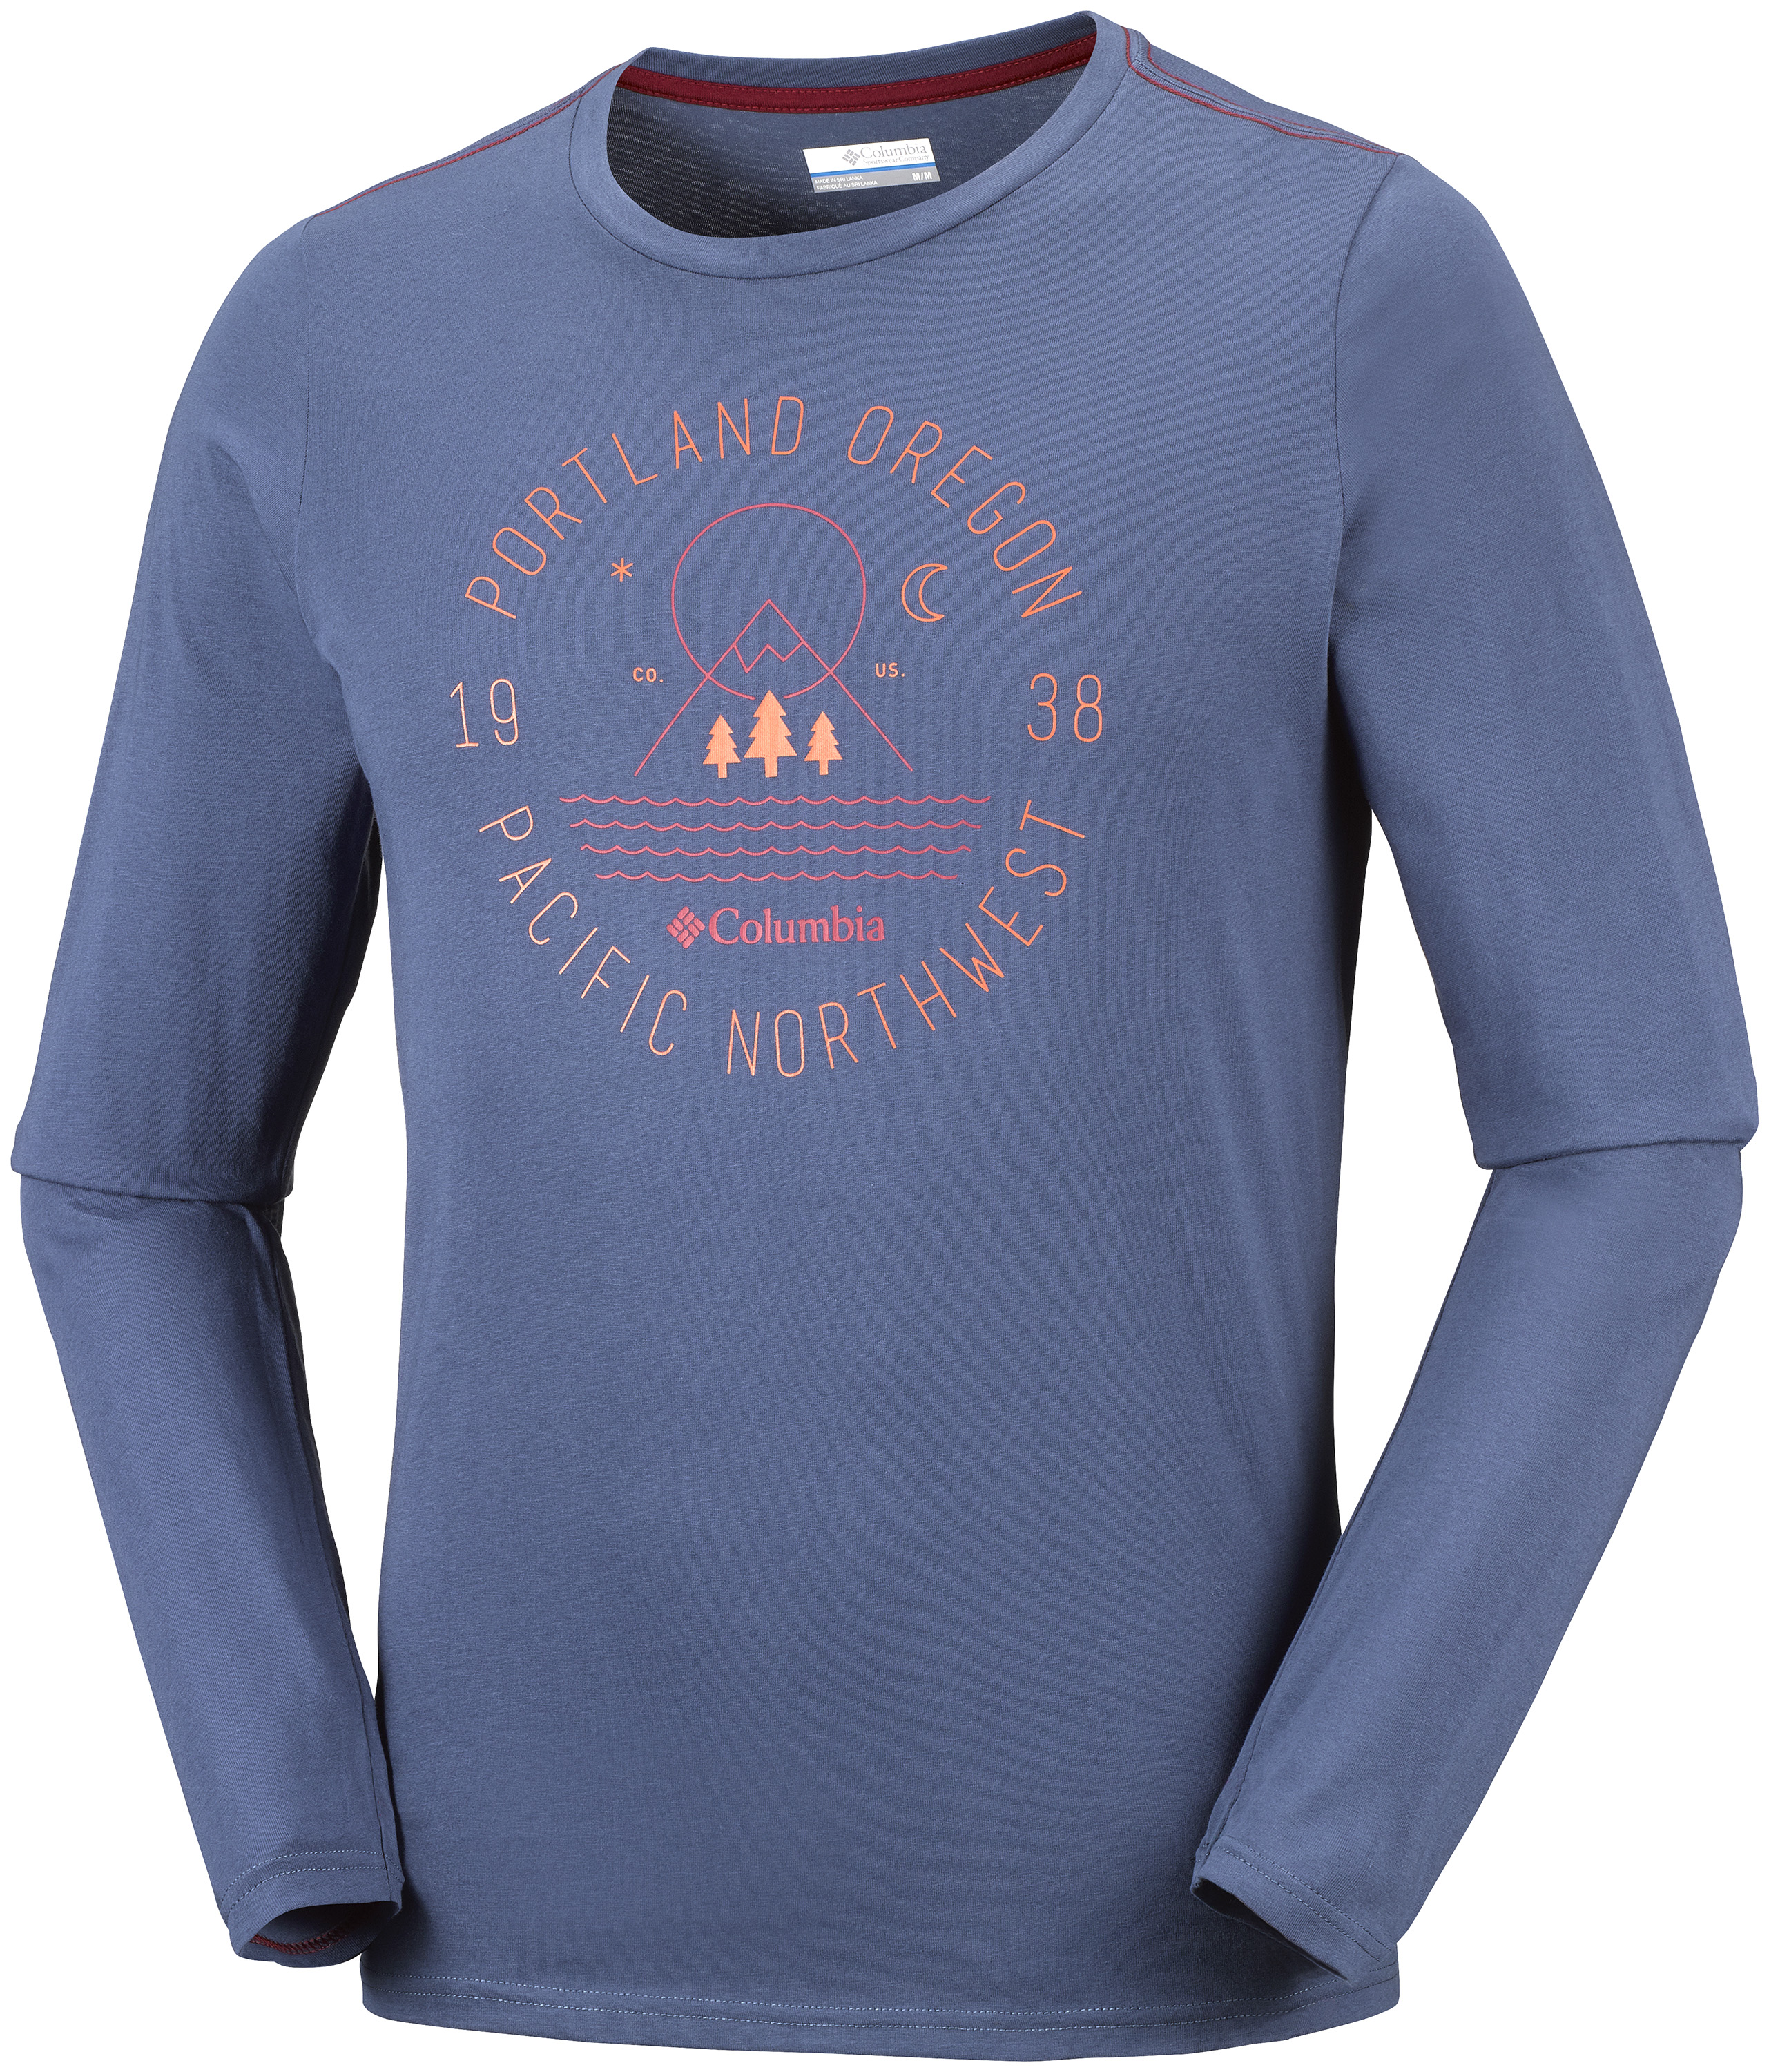 EM0064-478 COLUMBIA MILL CREEK LONG SLEEVE TSHIRT